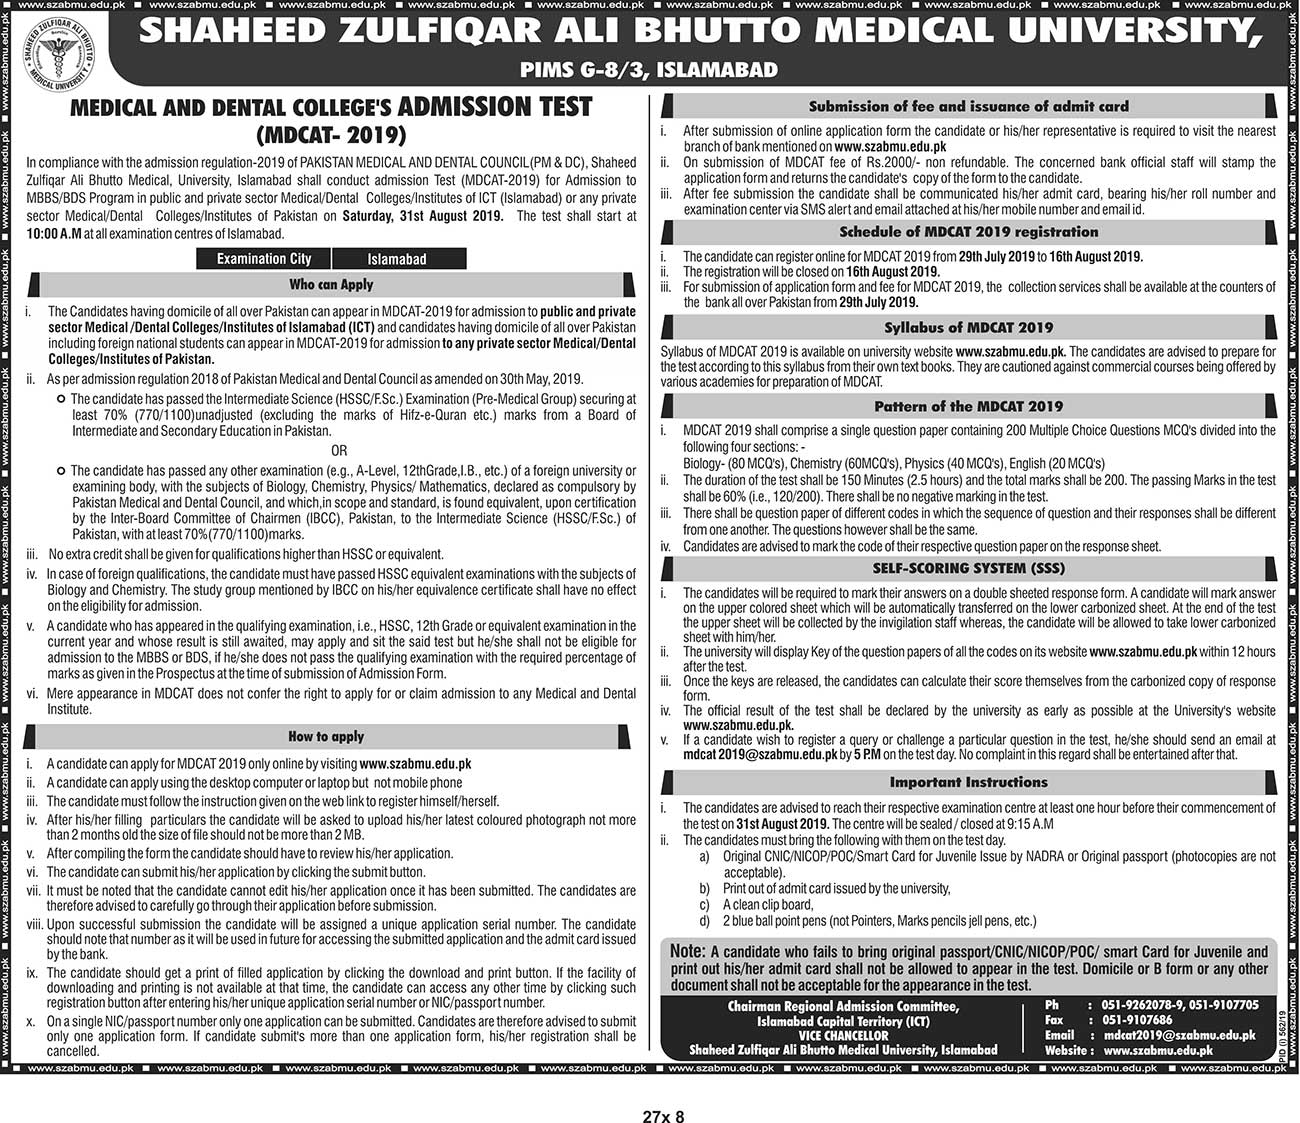 Medical and Dental Colleges Admission Test (MDCAT-2019)